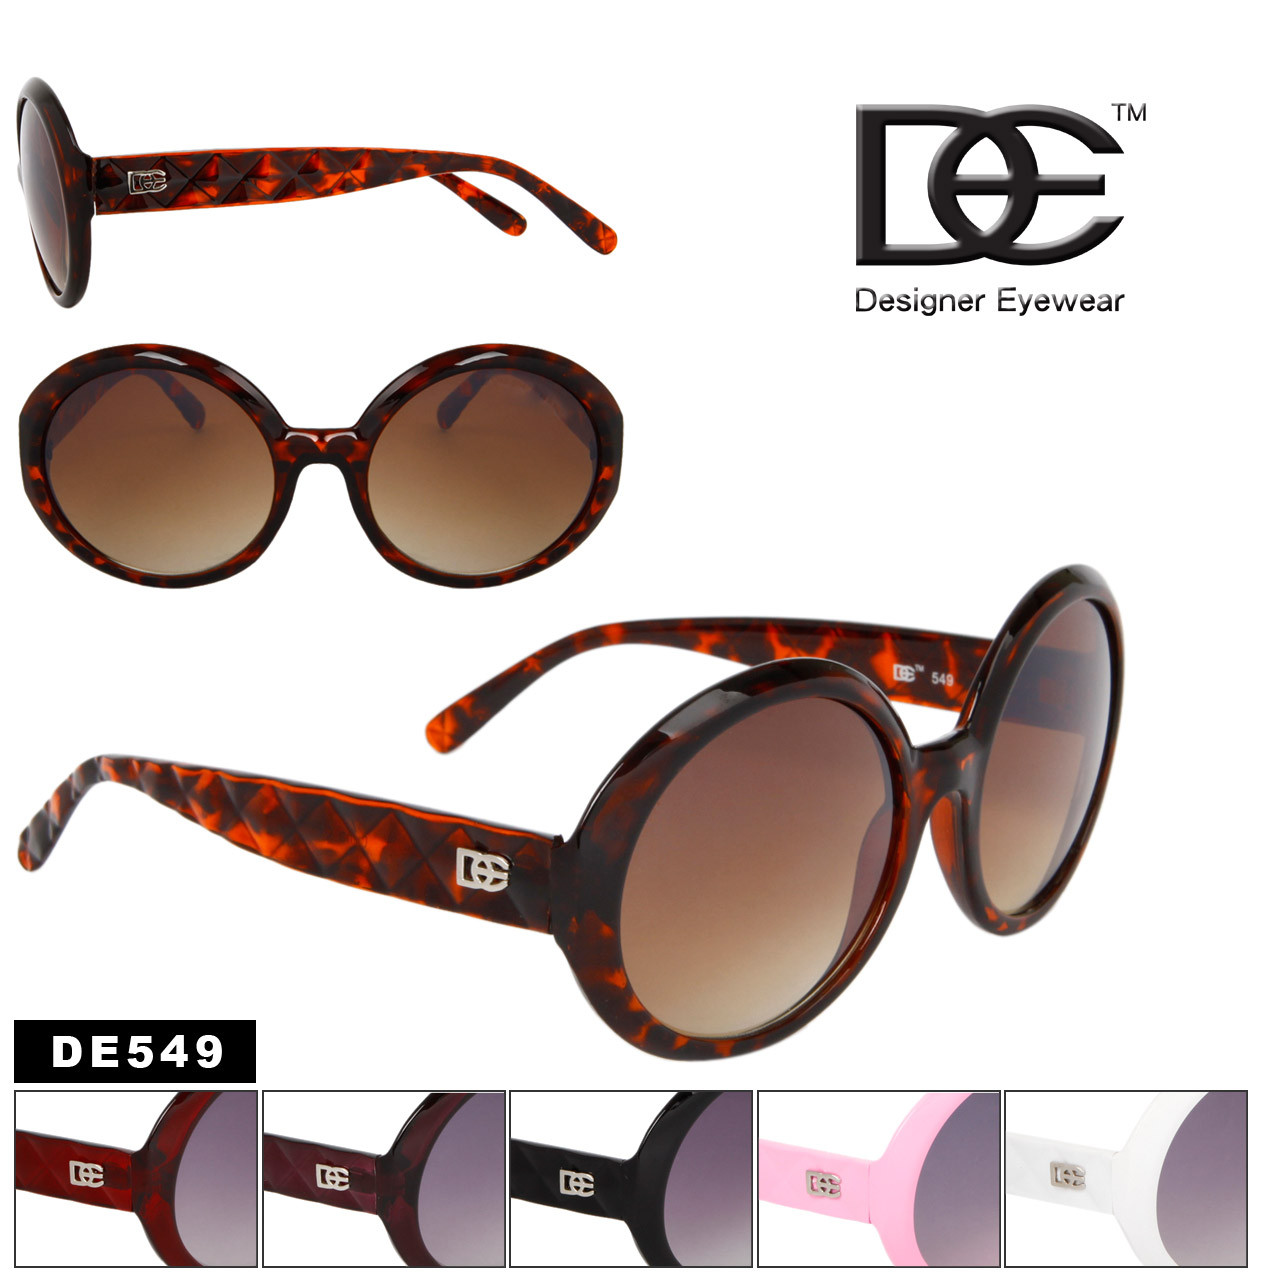 DE549 Vintage Women's Sunglasses